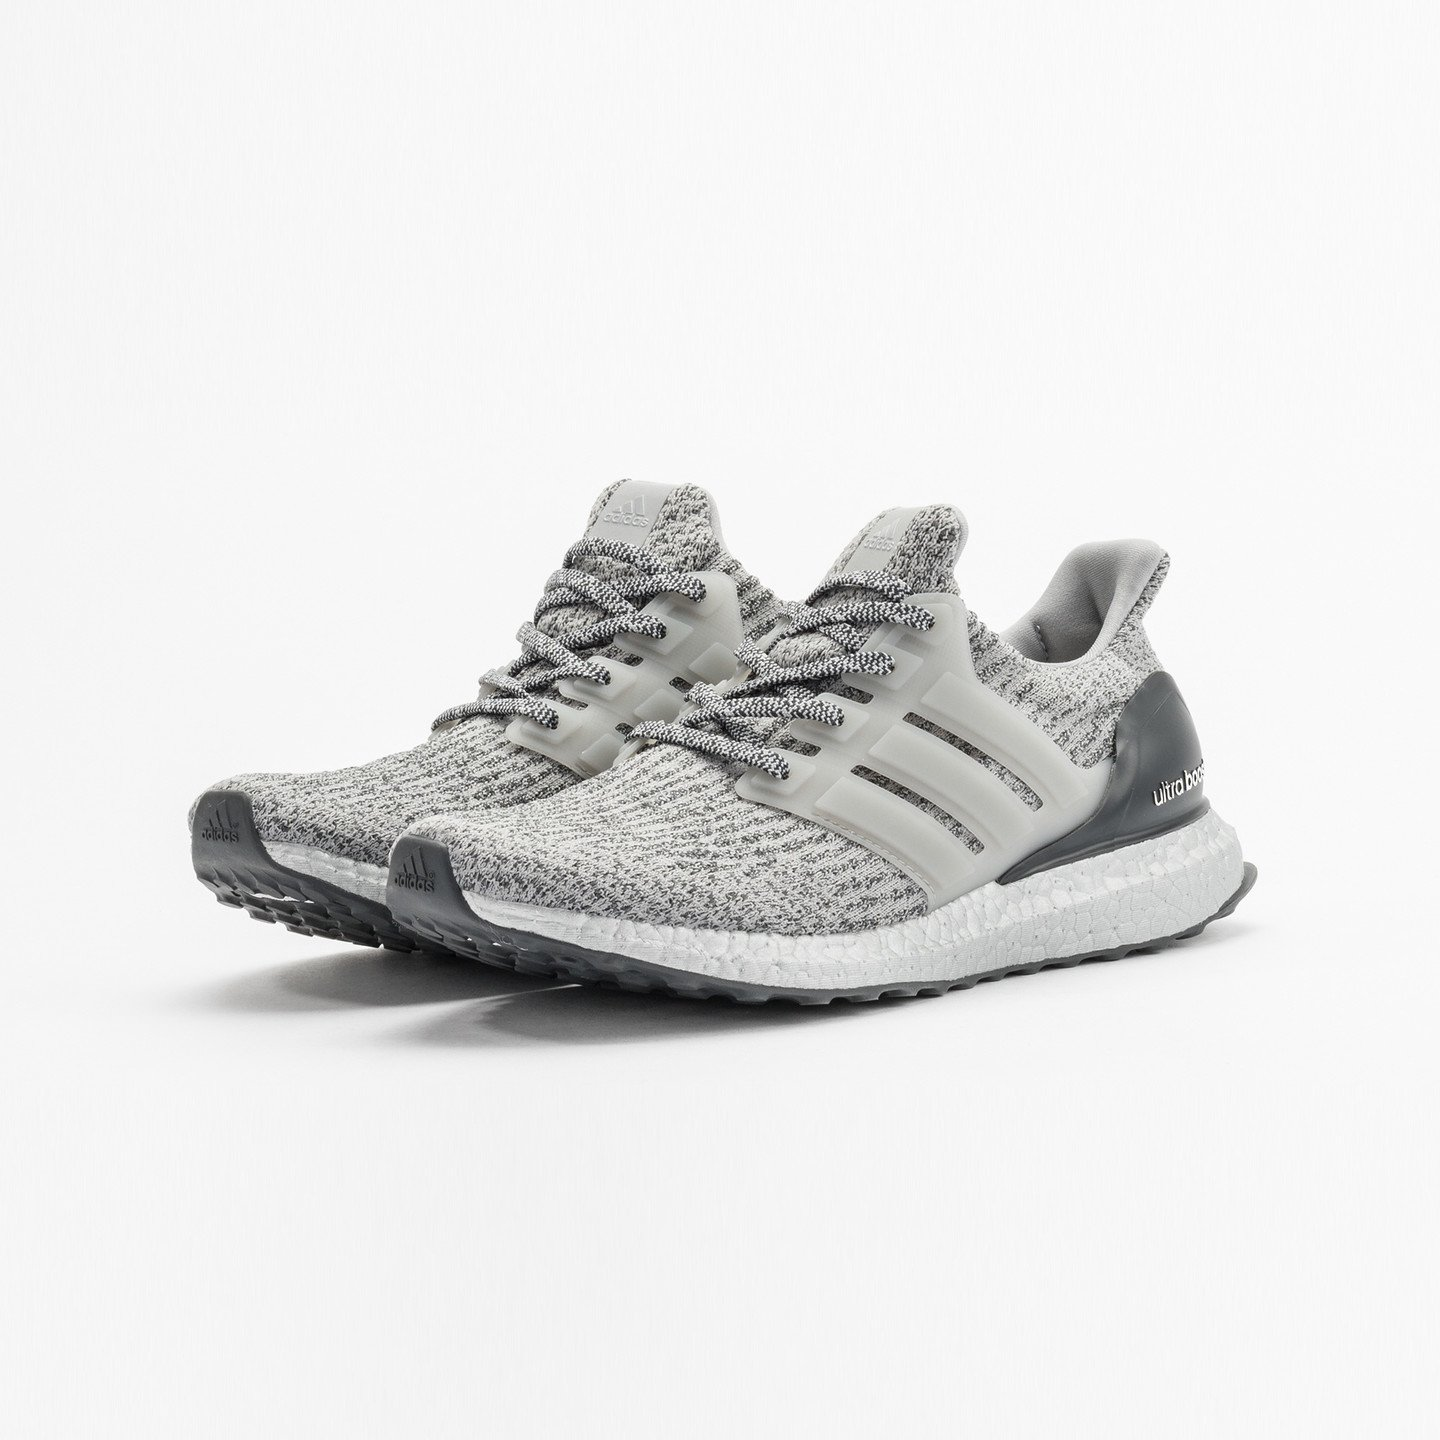 Adidas Ultra Boost 3.0 'Super Bowl' Silver Grey BA8143-44